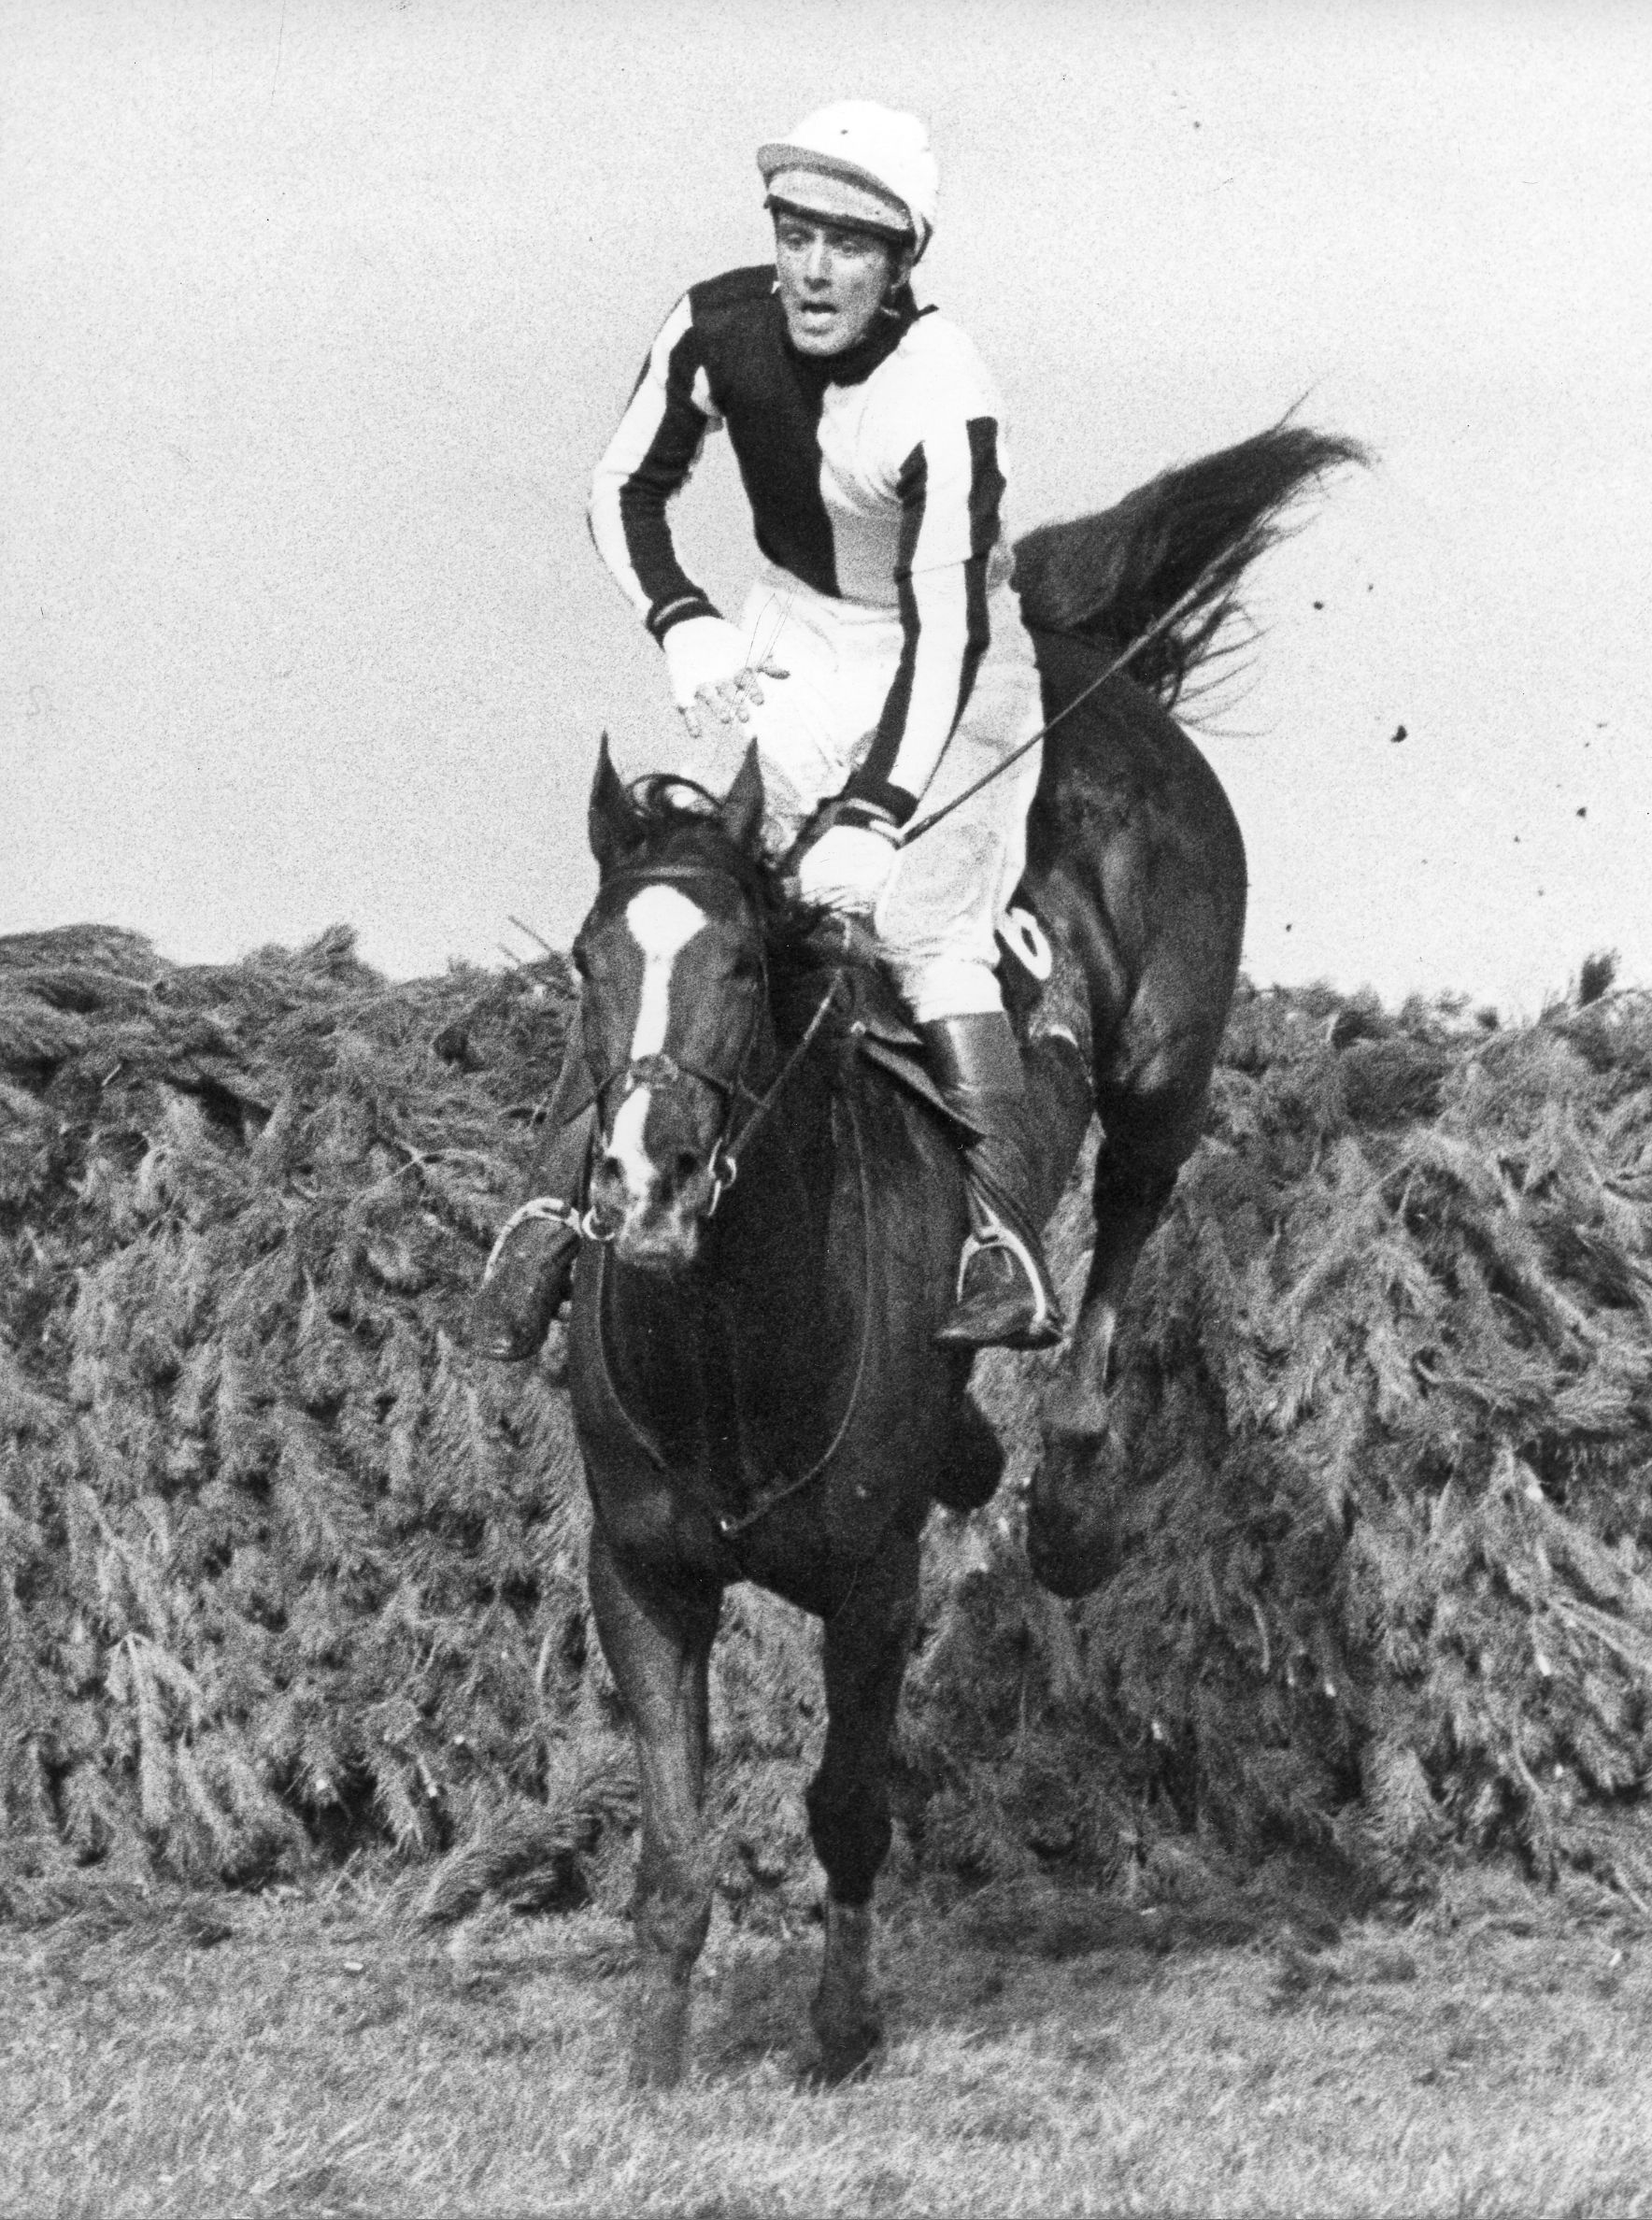 Ben Nevis II with Charles Fenwick, Jr., up at the 1980 English Grand National (Douglas Lees)